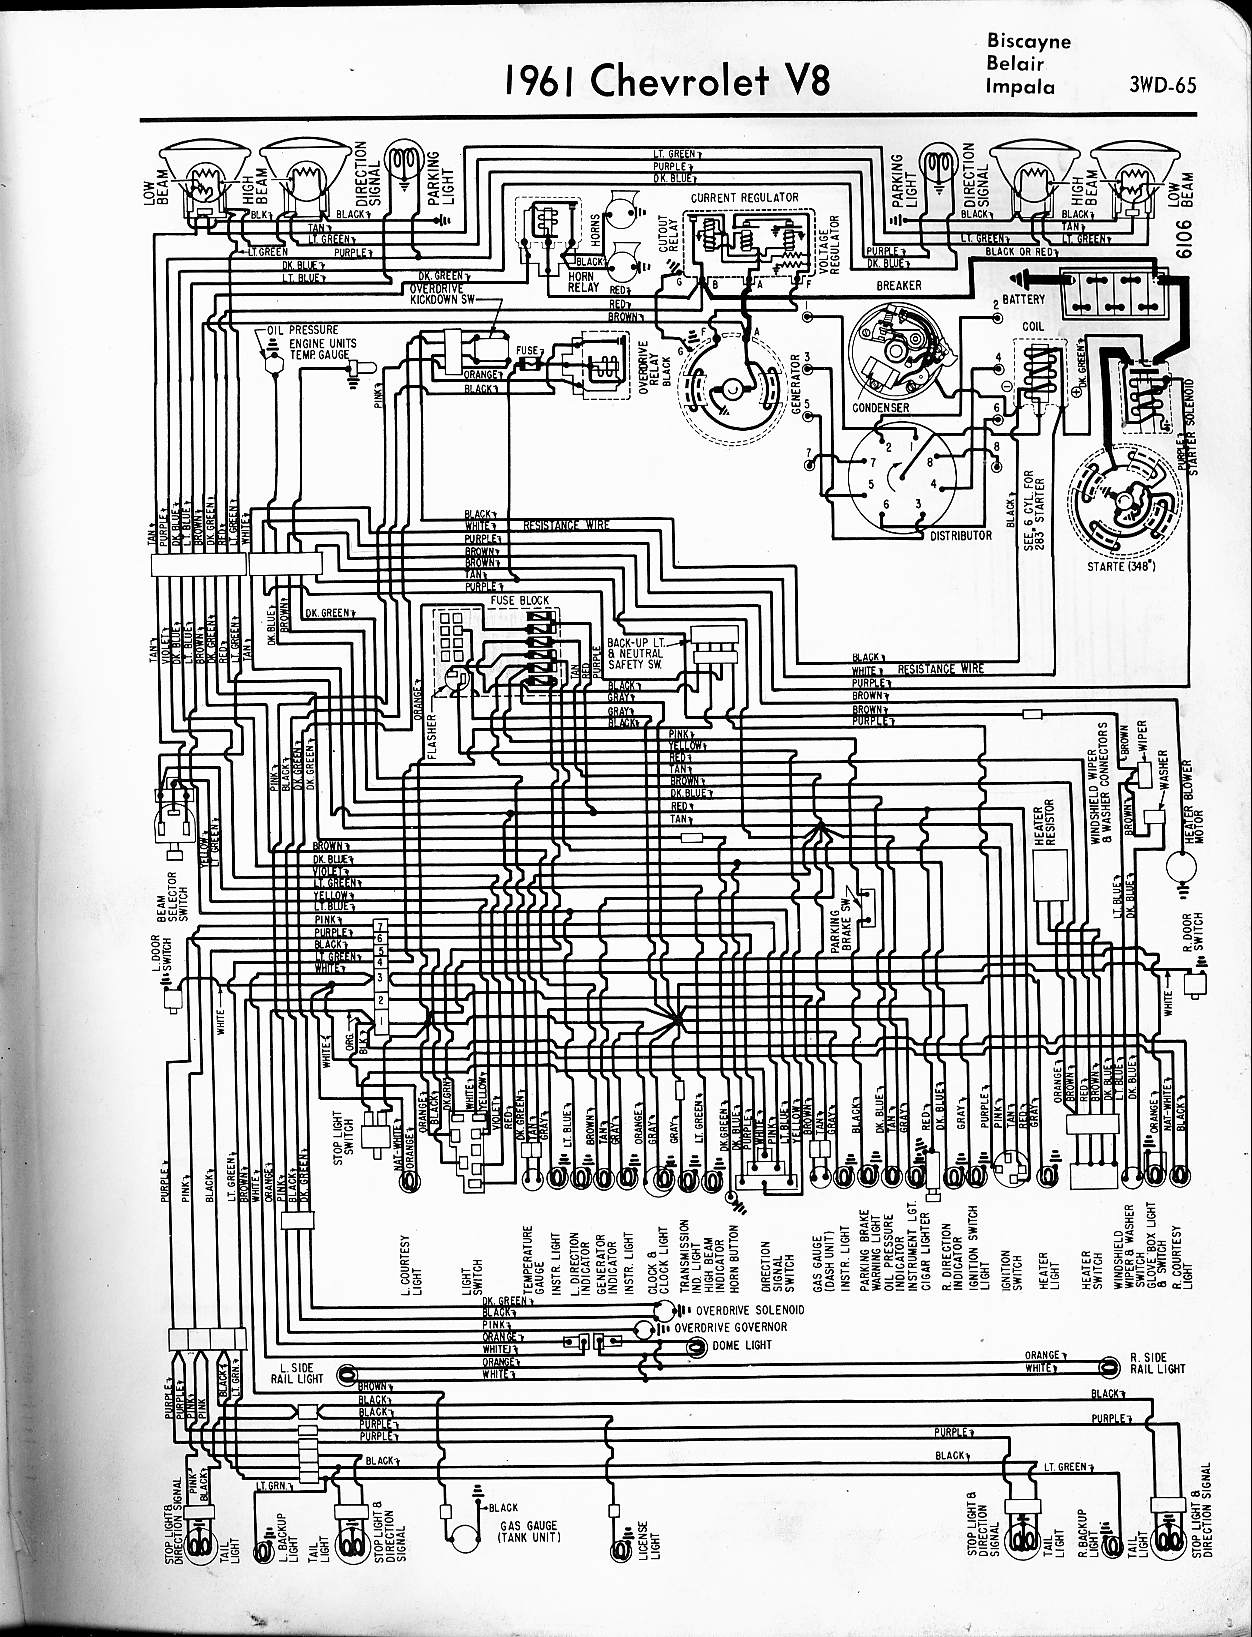 Tremendous 1965 Corvette Wiring Harness Diagram Data Schema Wiring Database Gramgelartorg